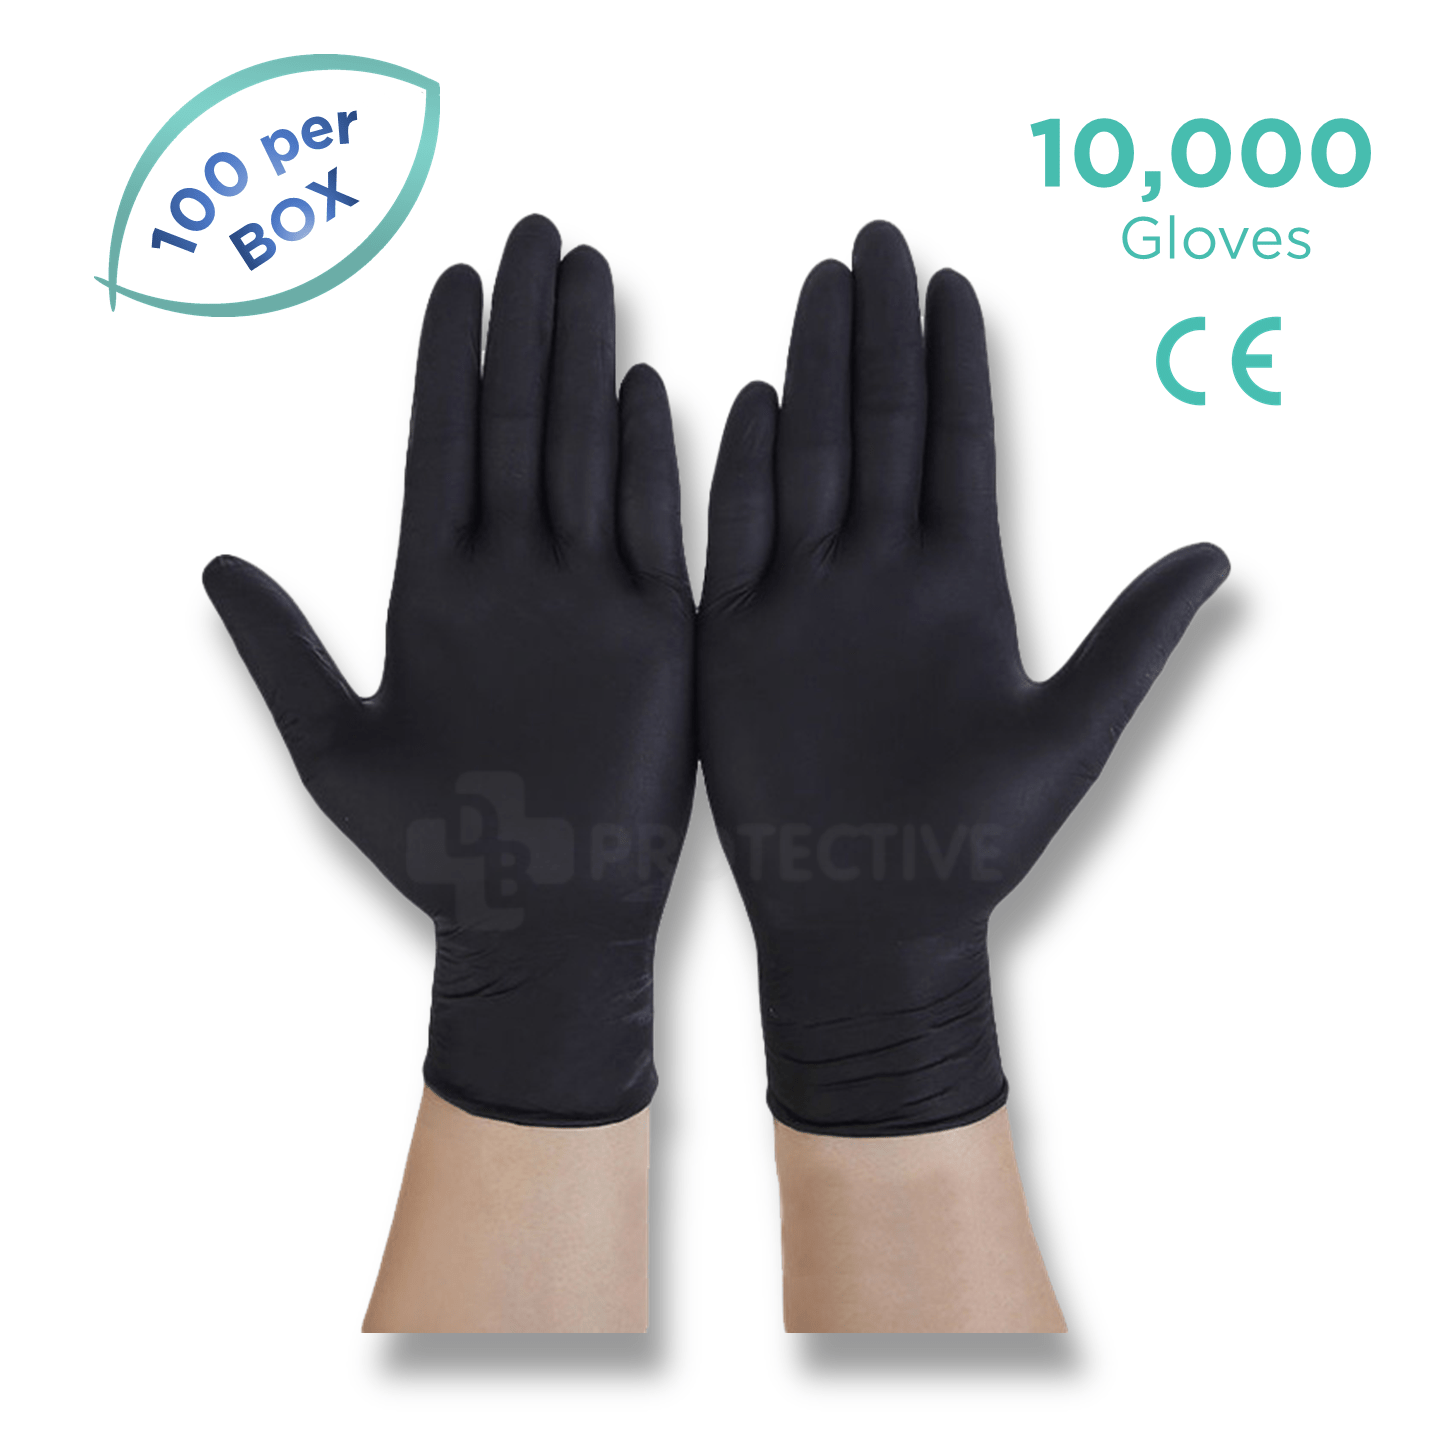 Black Nitrile Gloves - Pack of 10,000 - USA Medical Supply - DB Protective